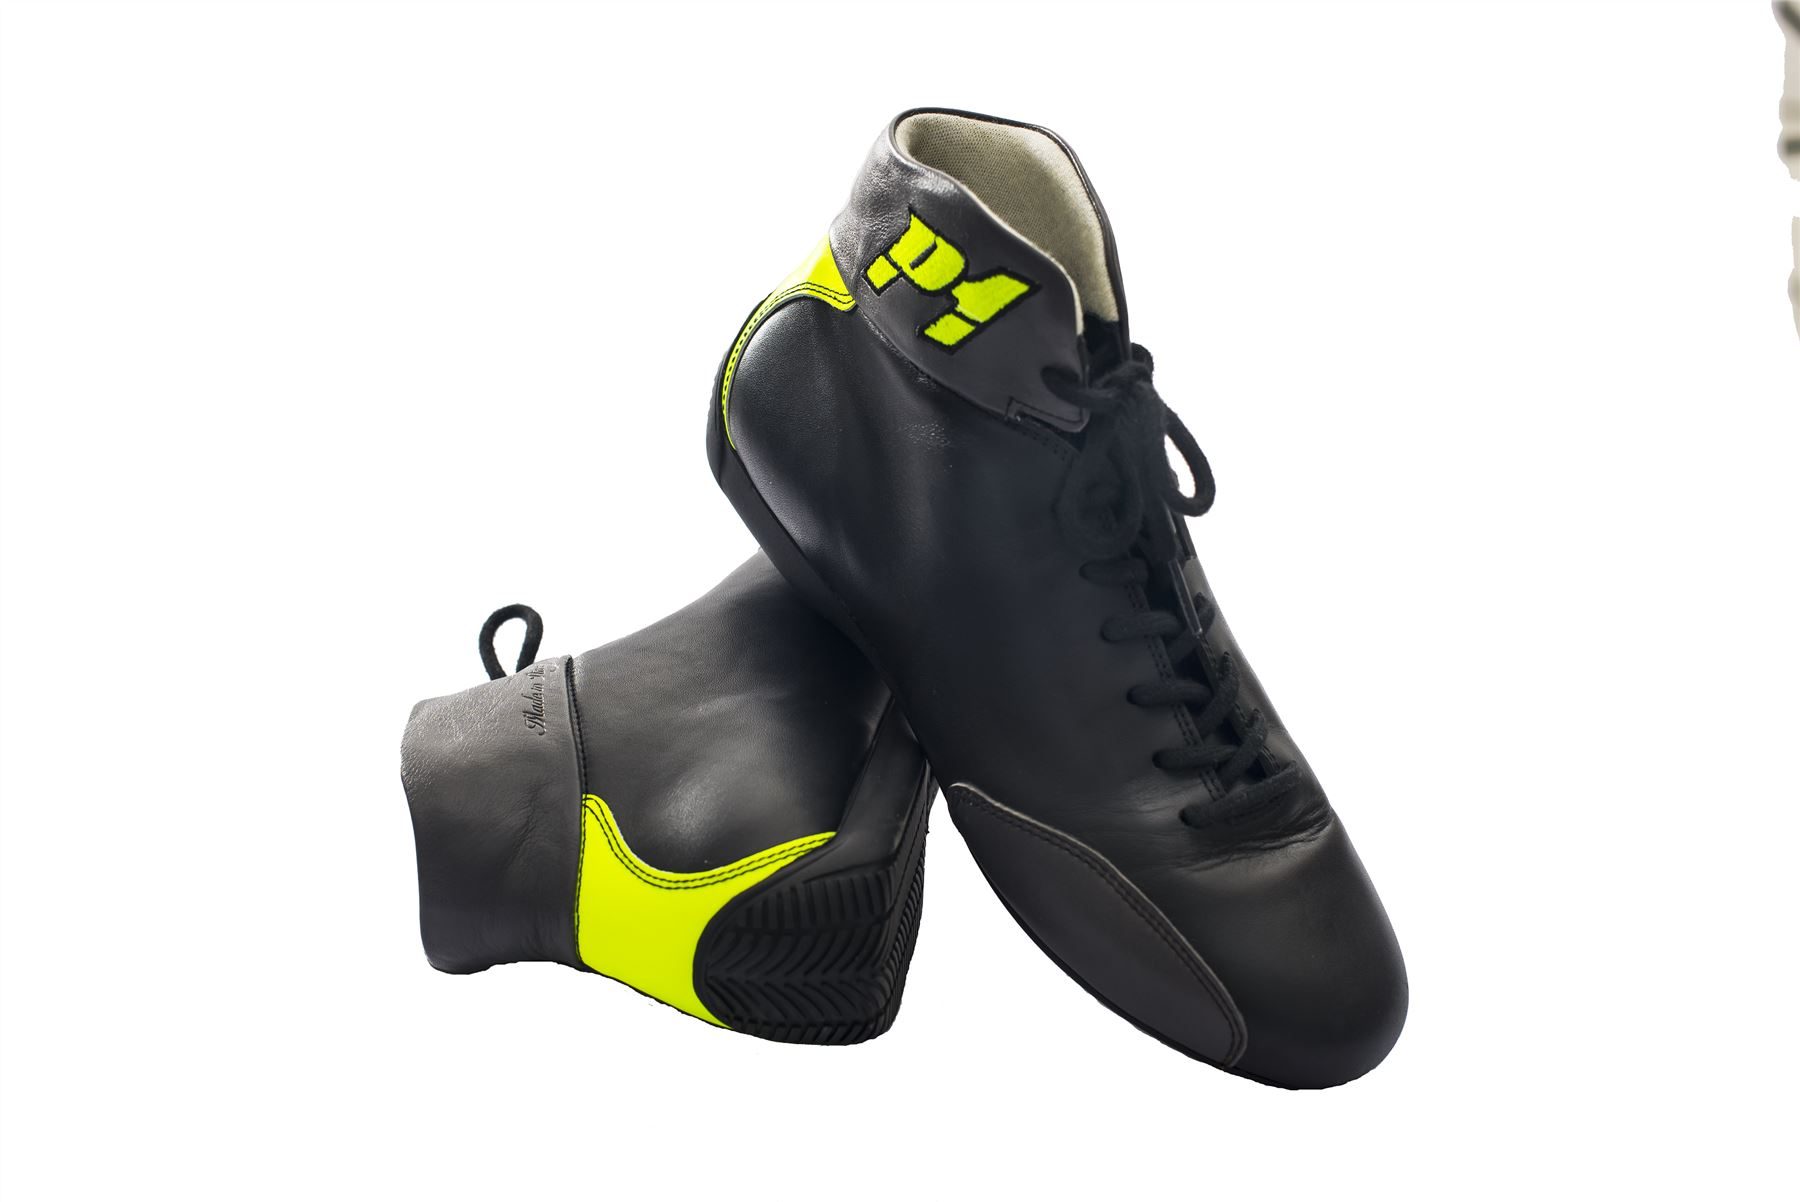 Indexbild 13 - P1 Racewear Monza FIA Approved Soft Leather Race, Rally Boots Black/Fluro